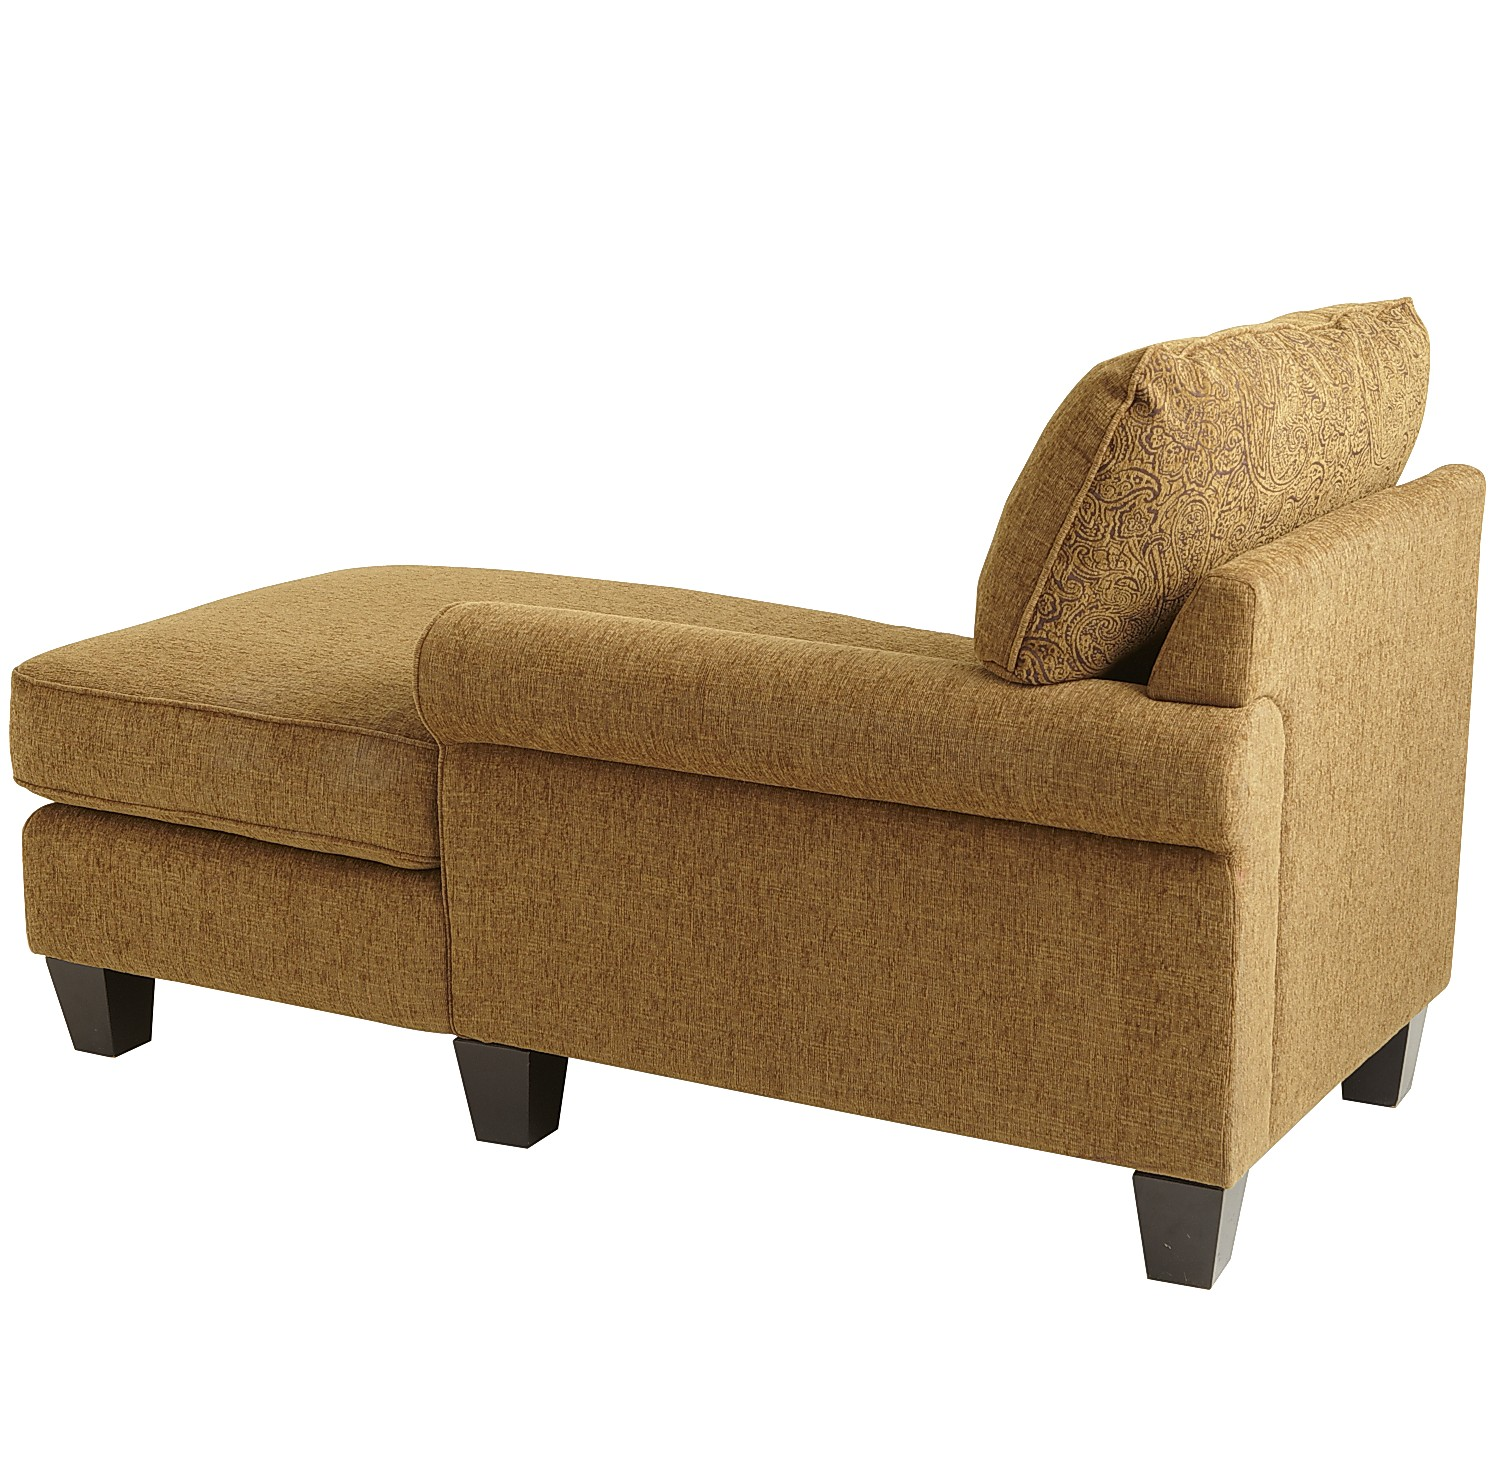 Crandall Chaise - Right Arm Facing